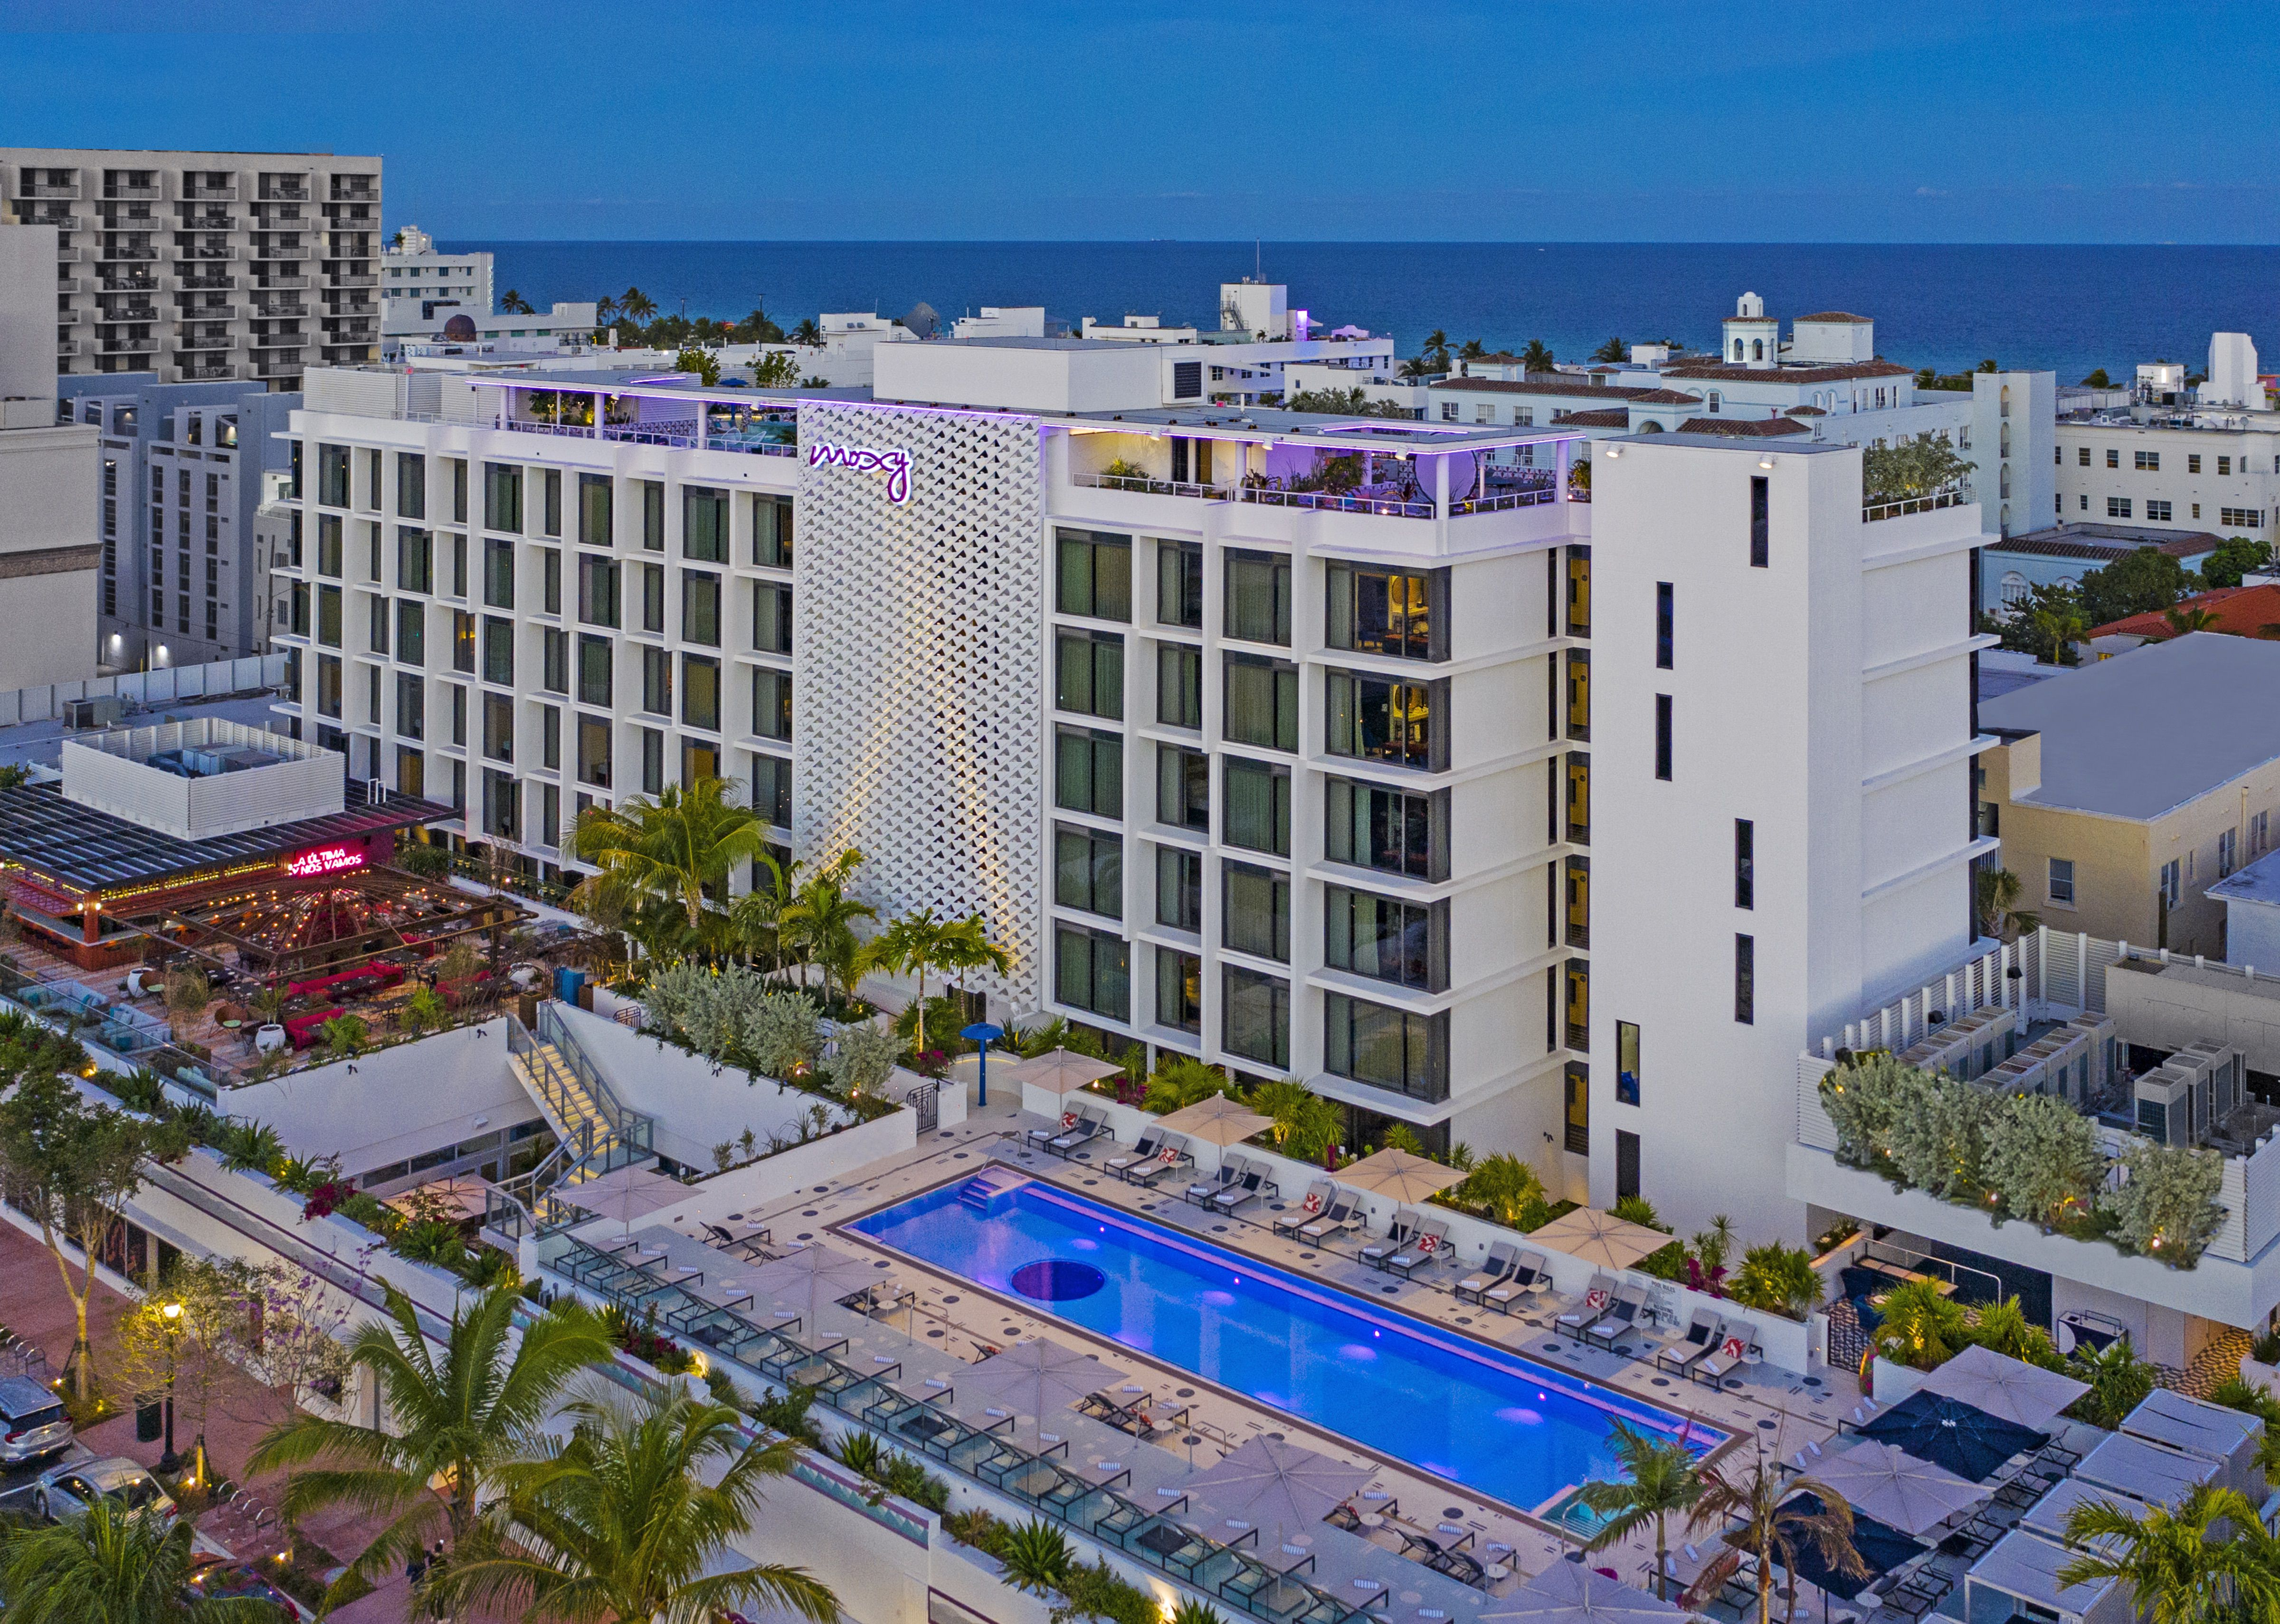 The Moxy Brand Comes to South Beach with This Extravagant New Hotel